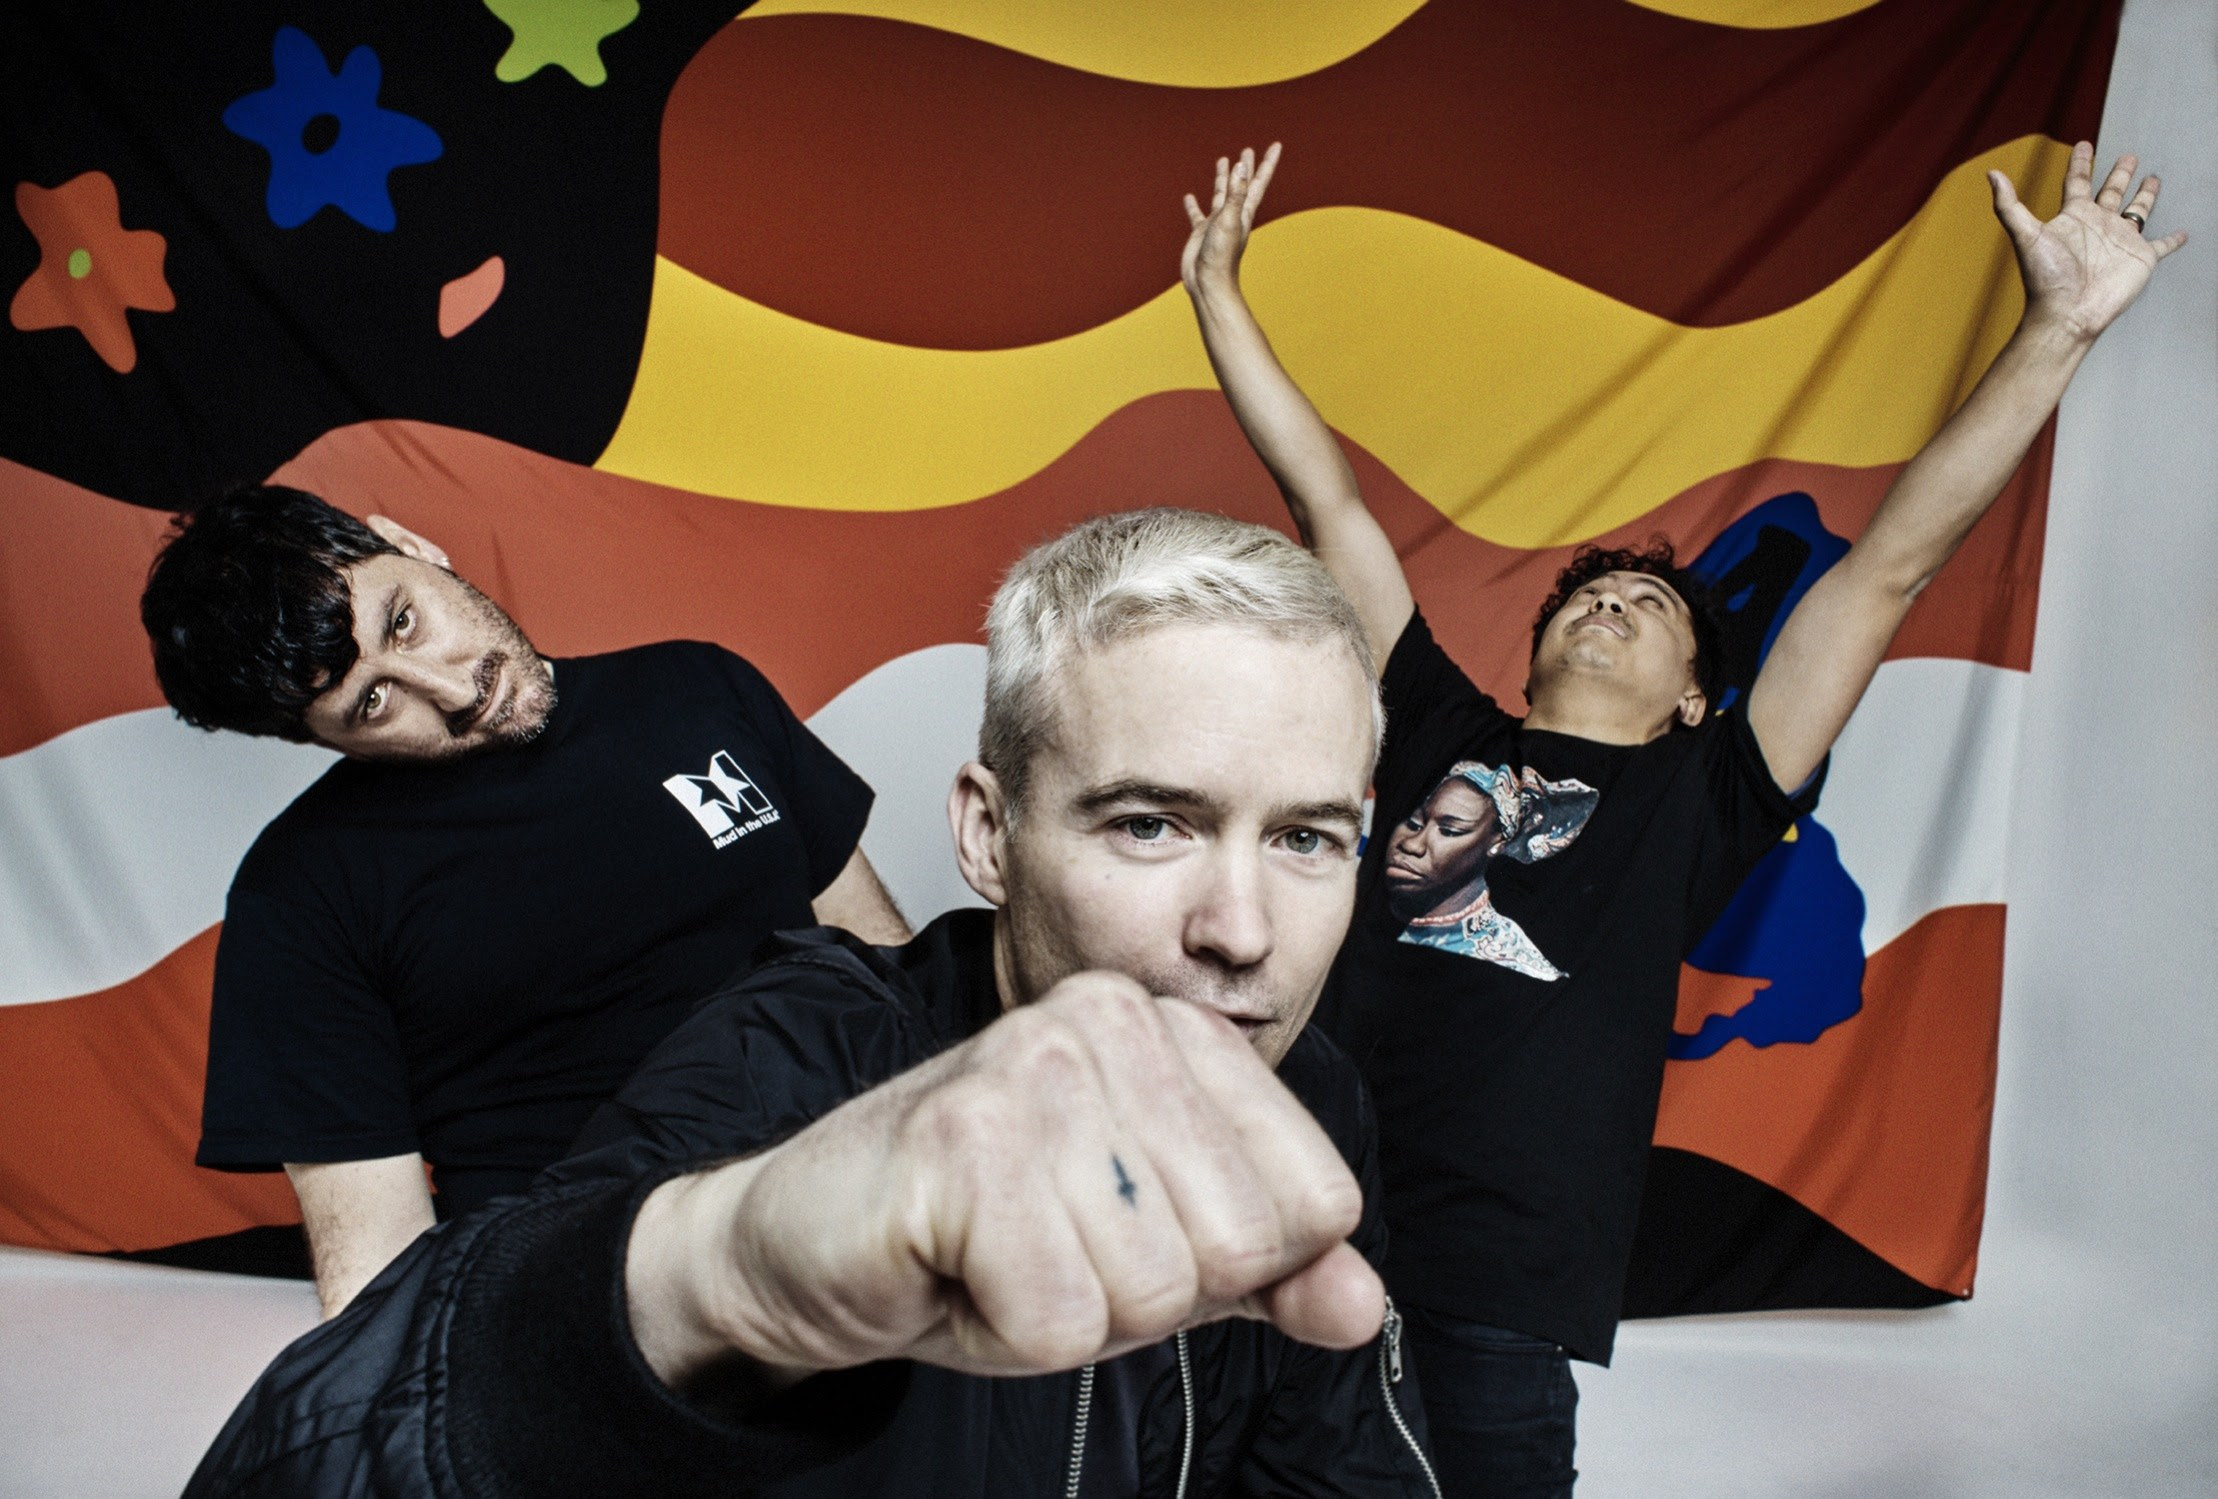 The Avalanches are working on new music